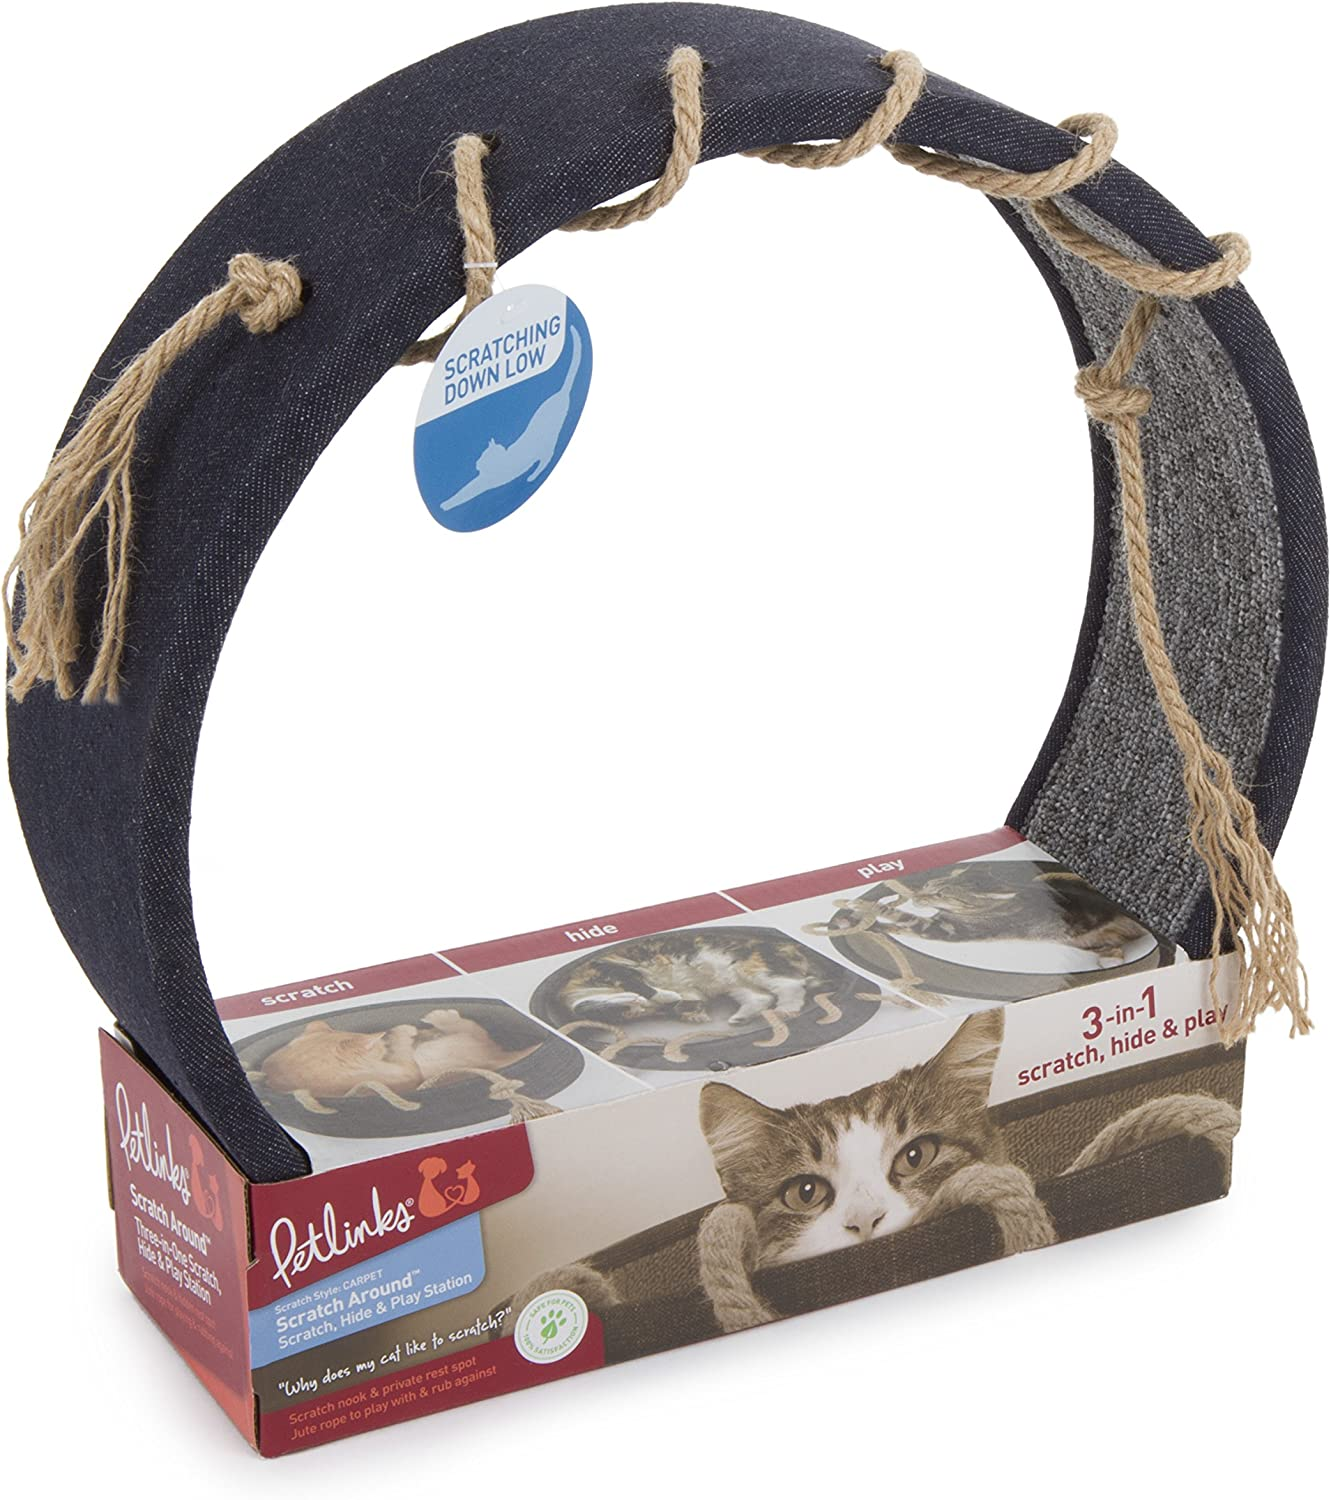 Petlinks 49902 Scratch Around 3in1 Hide & Play Station